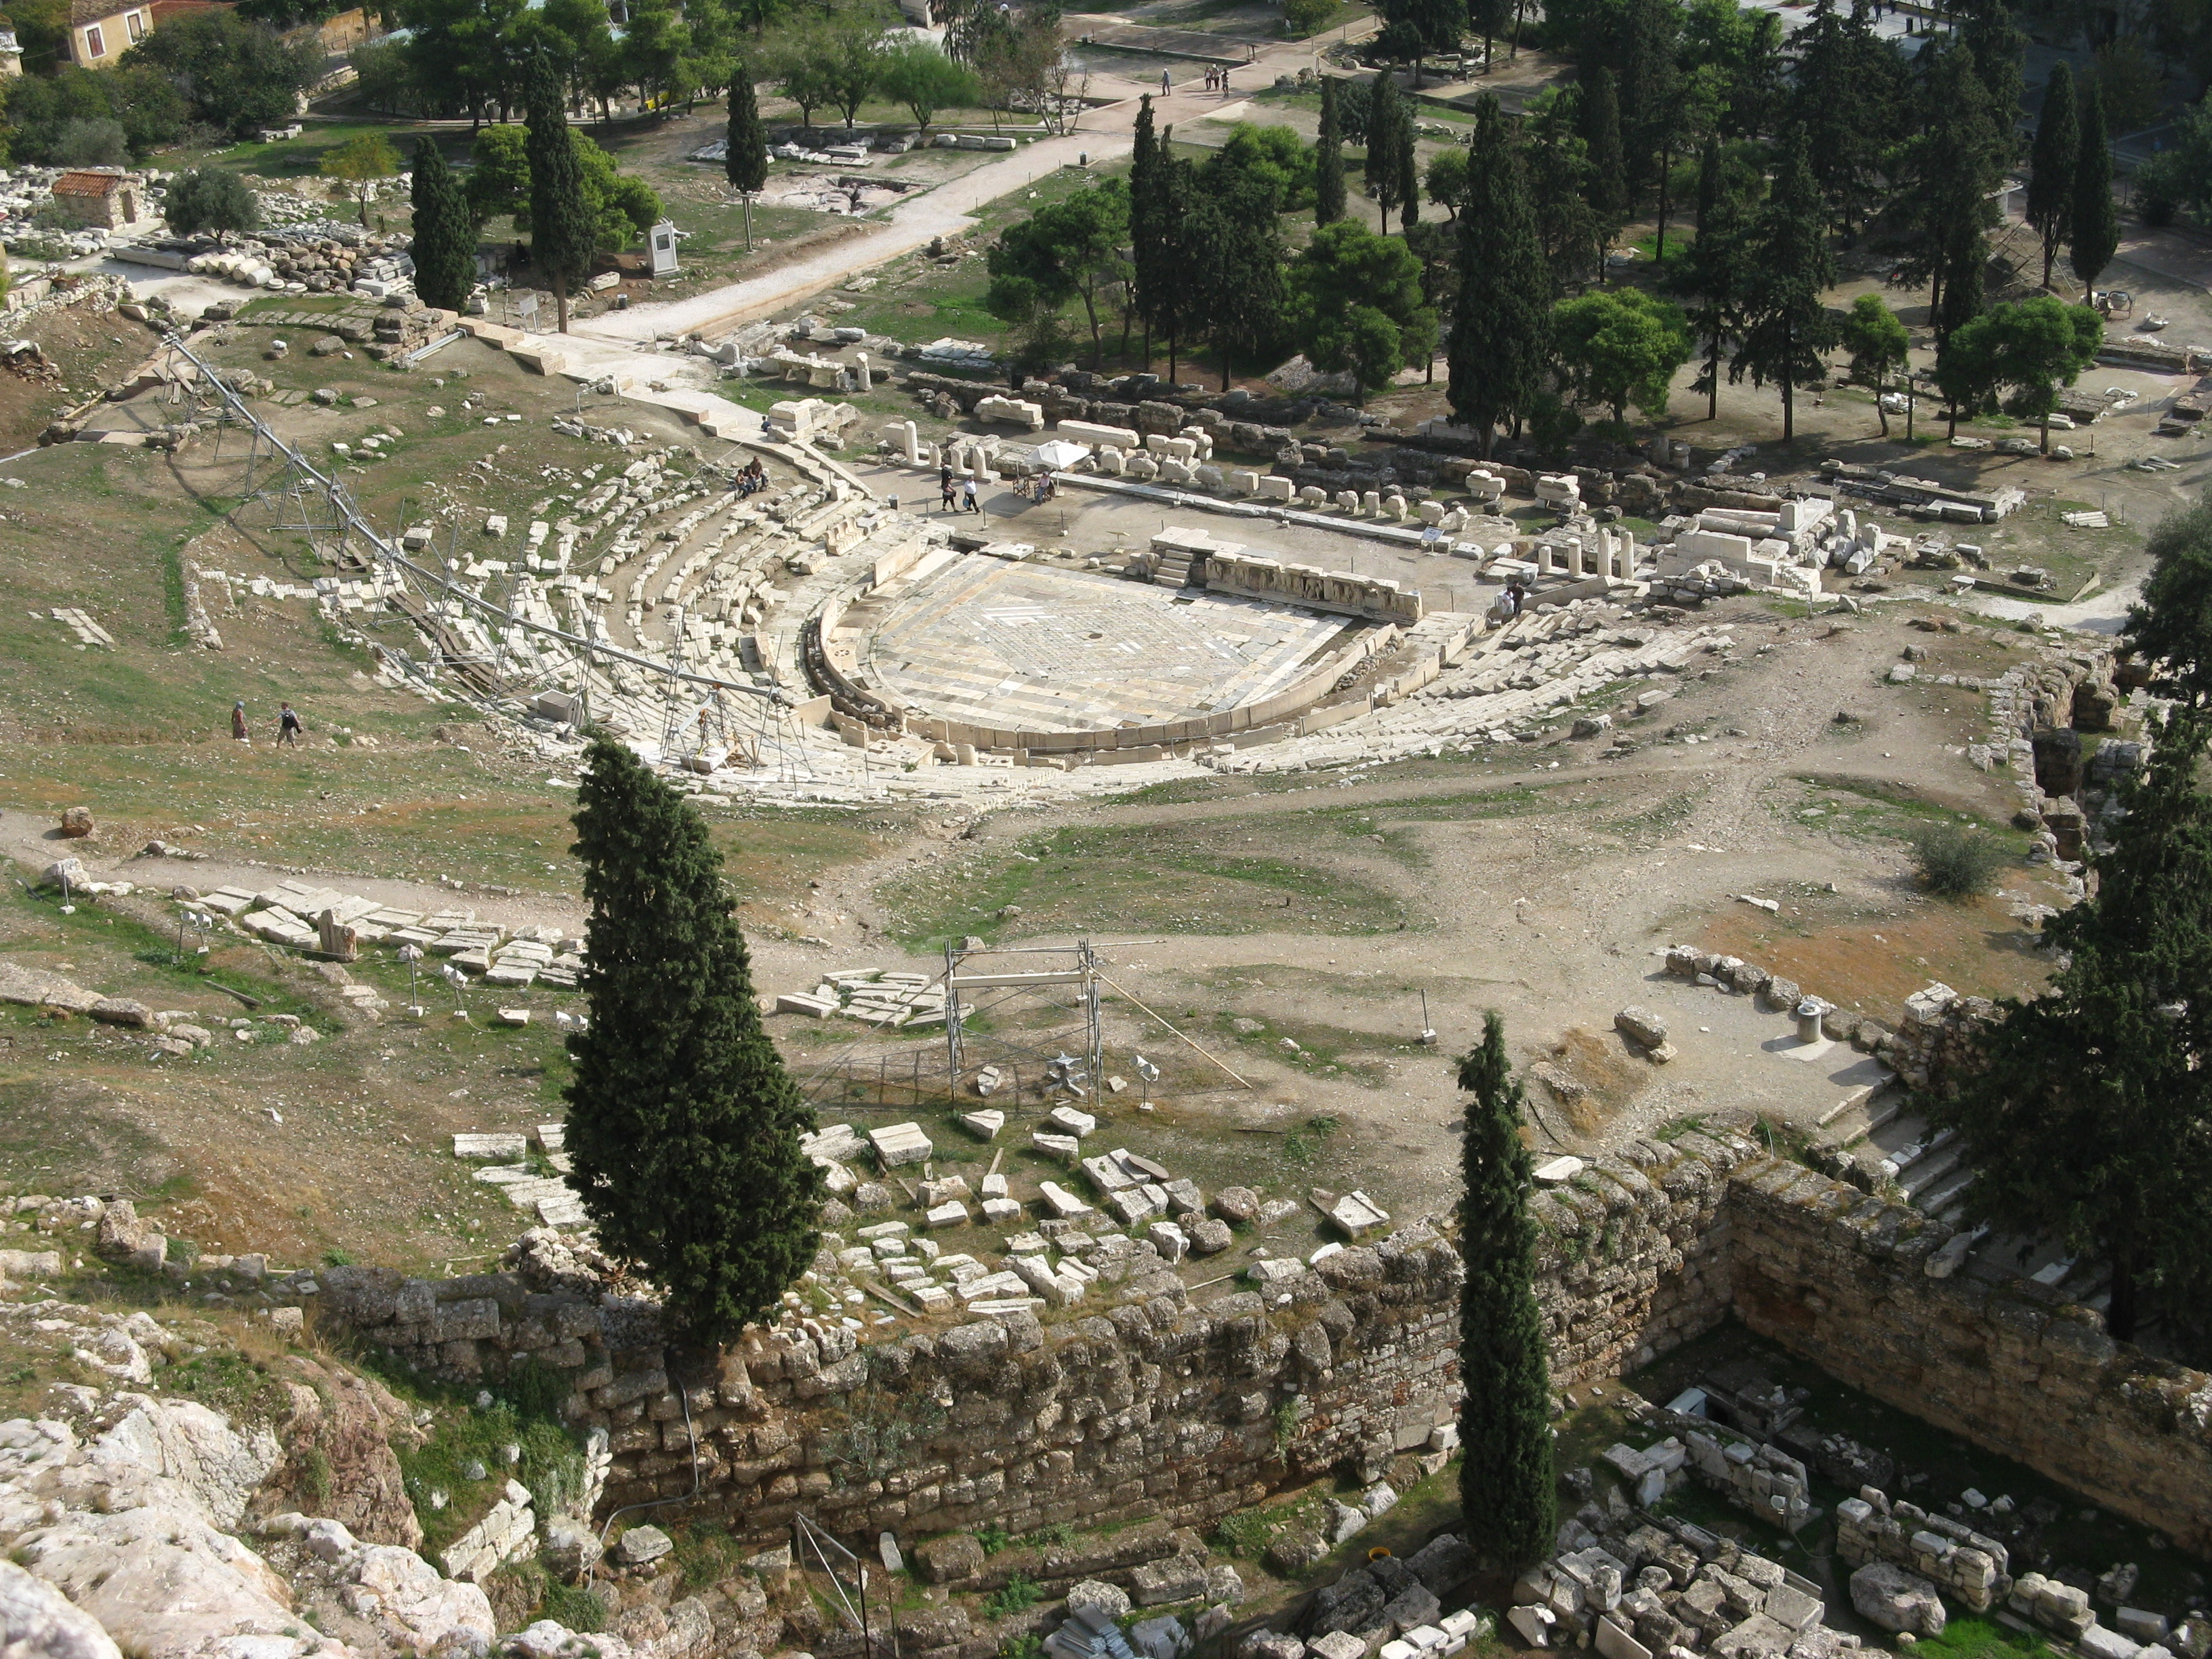 File:Theatre of Dionysus-Athens.jpg - Wikimedia Commons